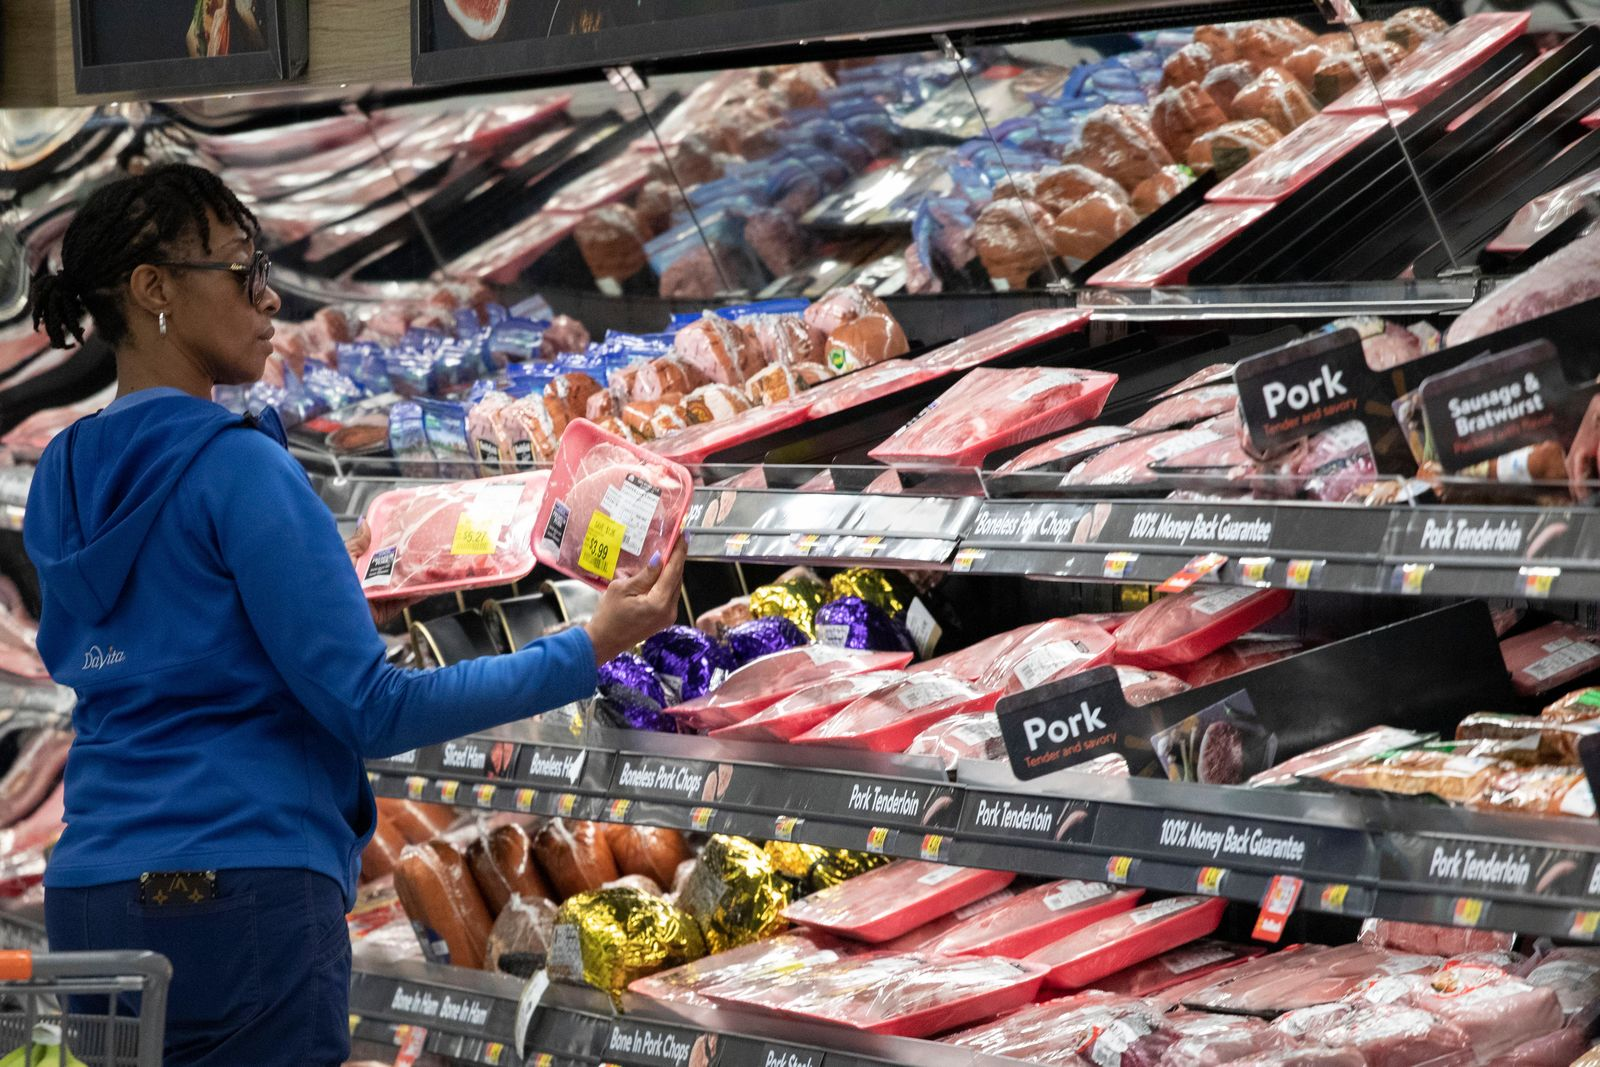 FILE - In this April 24, 2019 file photo,  a customer shops at the meat counter at a Walmart Neighborhood Market in Levittown, N.Y. On Friday, May 10, the Labor Department reports on U.S. consumer prices for March. (AP Photo/Mark Lennihan, File)